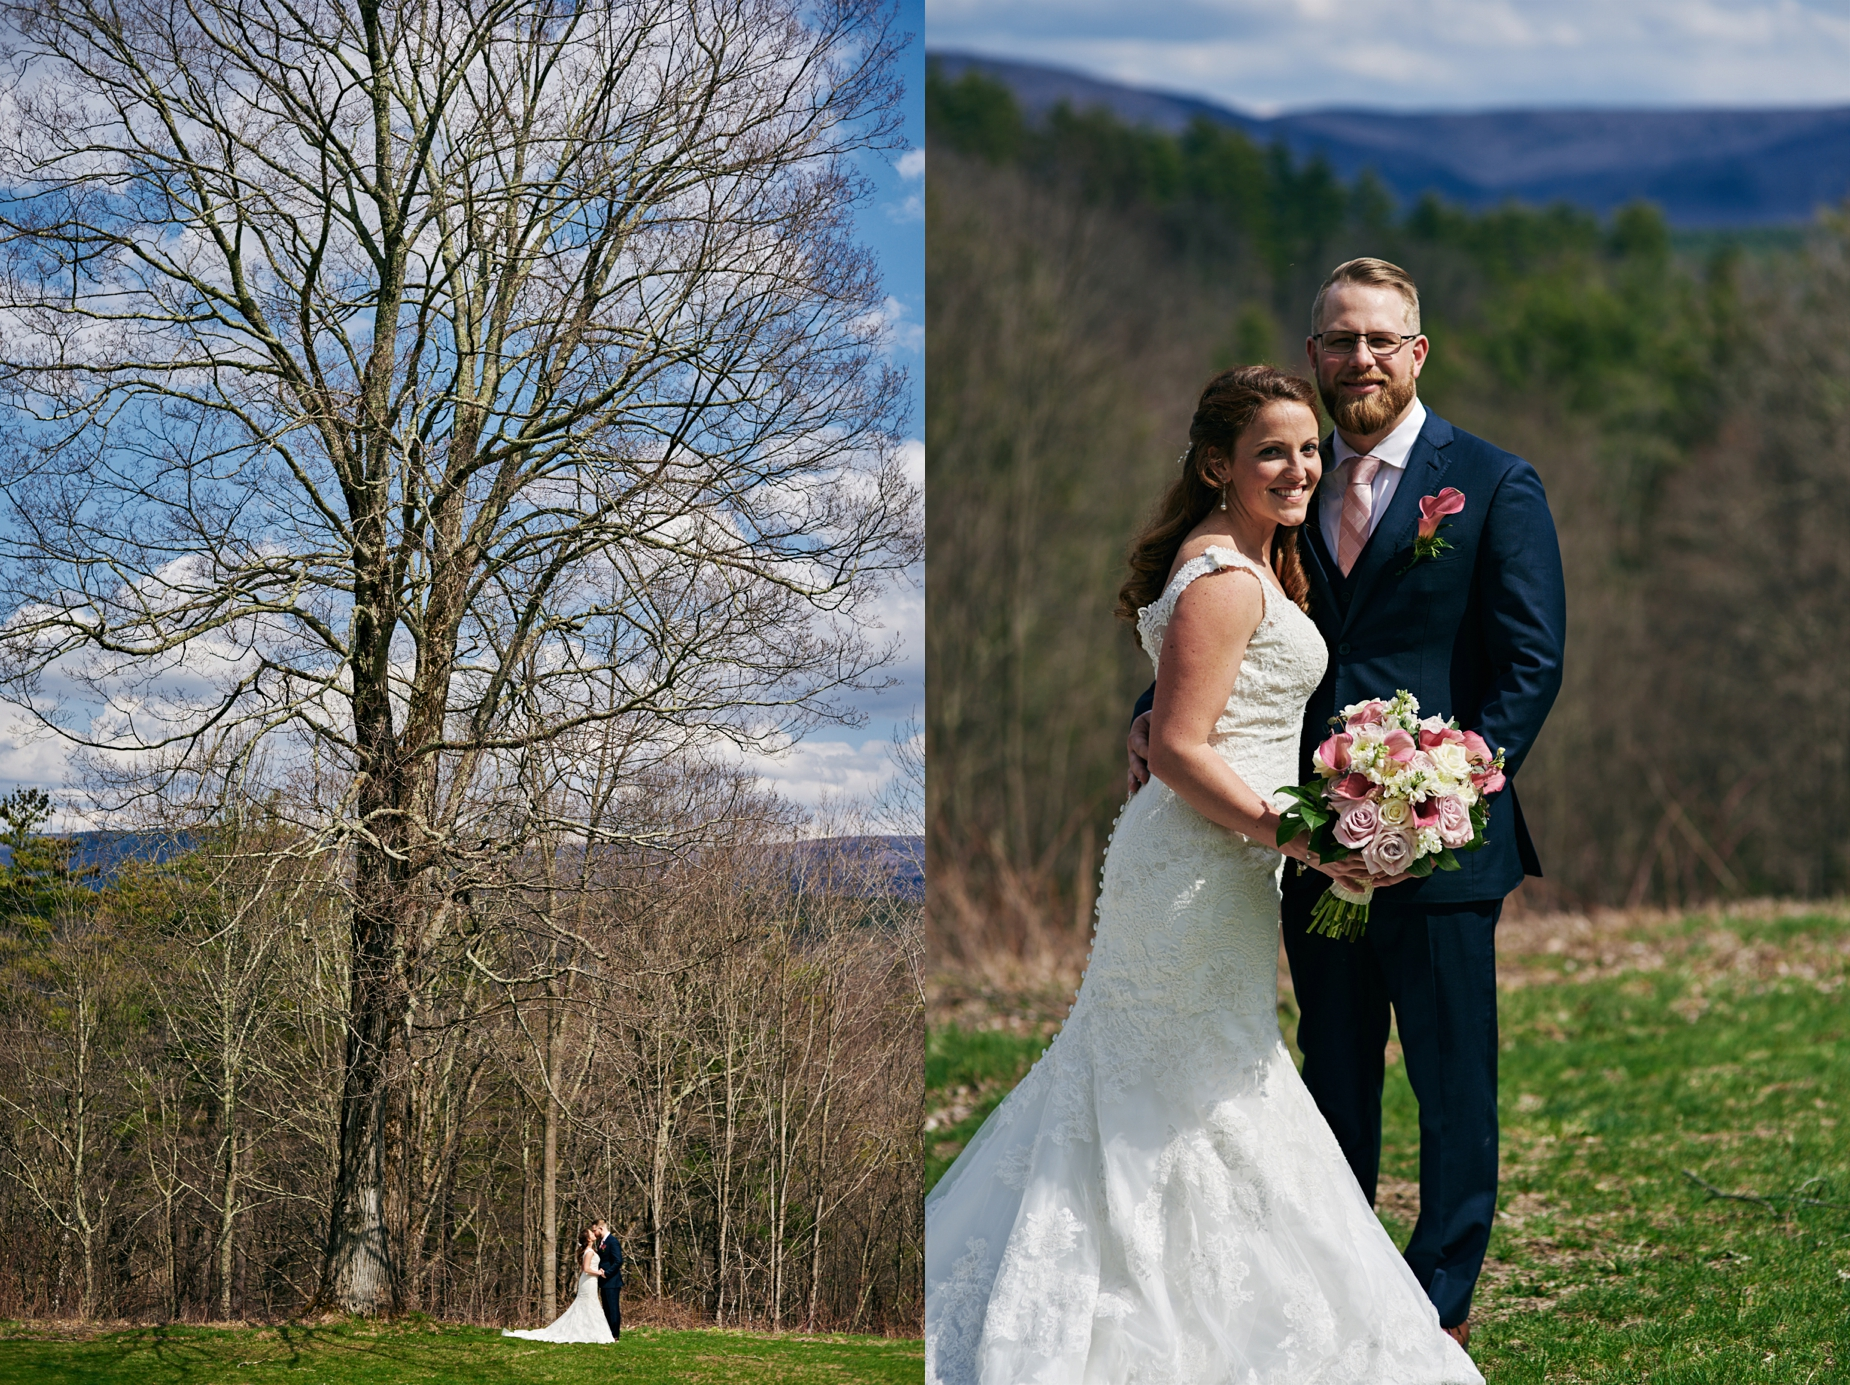 Laura and Luke's wedding at West Mountain Inn in Arlington, Vermont